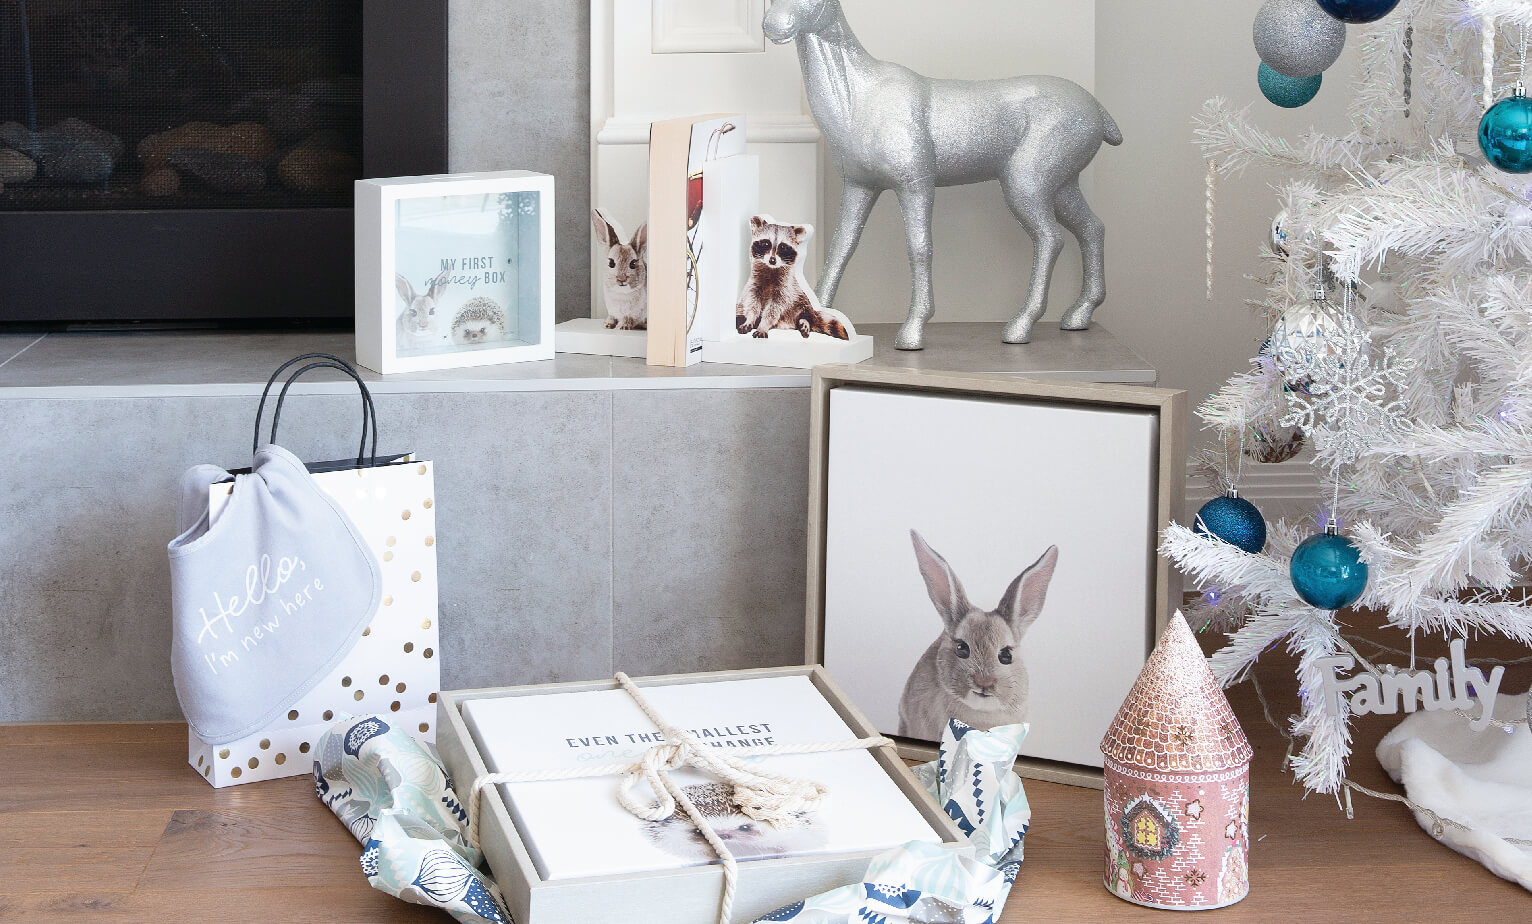 Unique & fun gifts for little ones